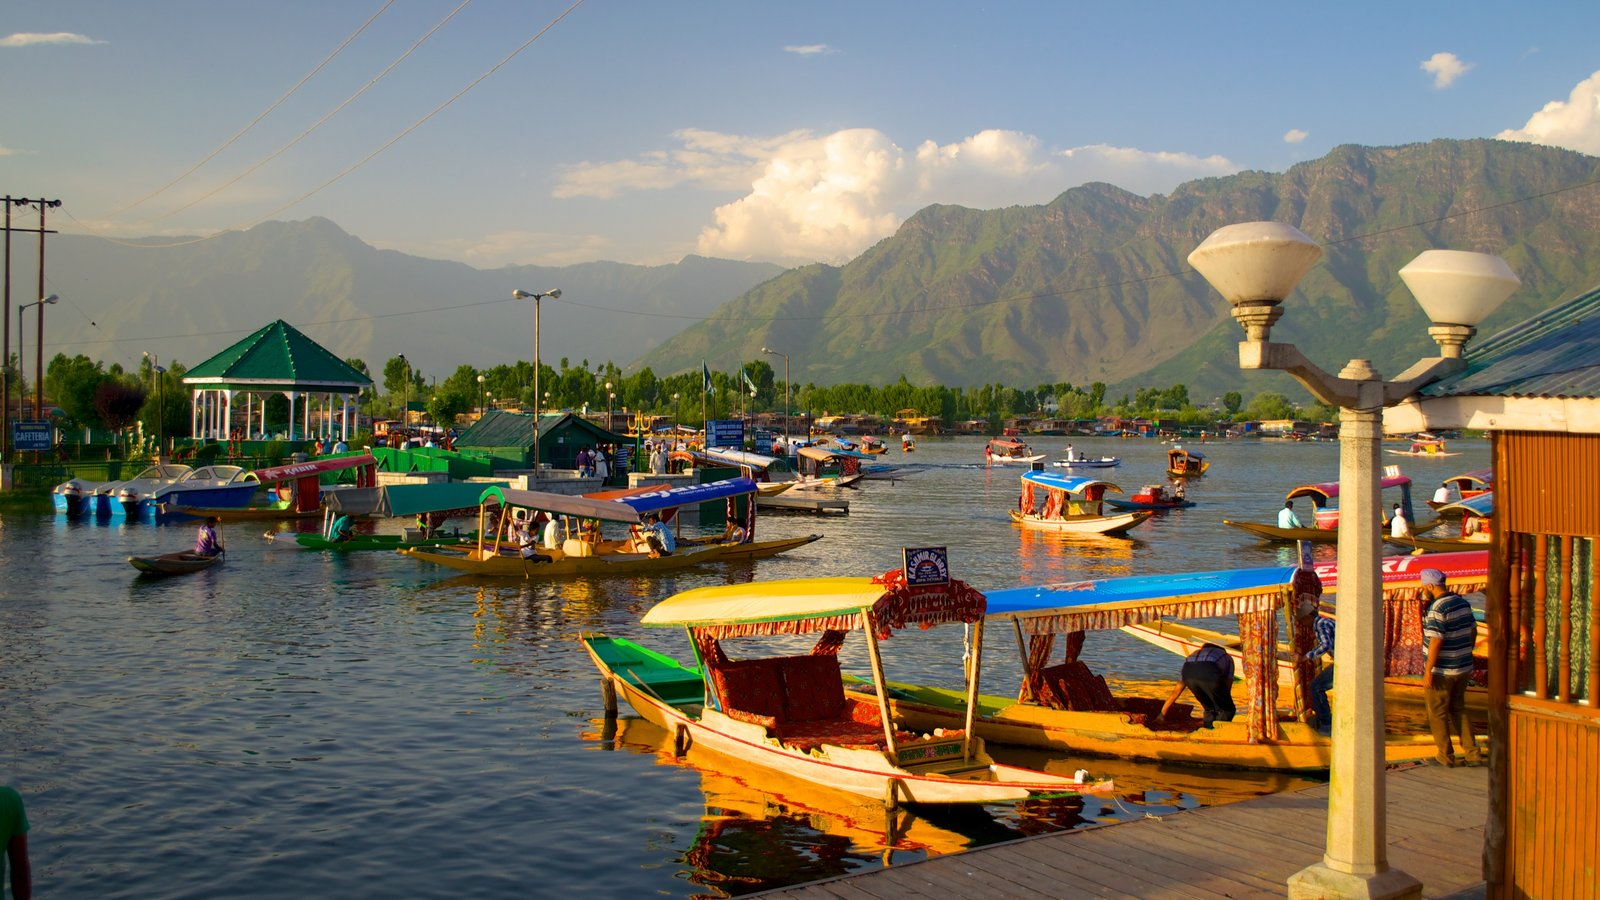 Srinagar featuring a lake or waterhole